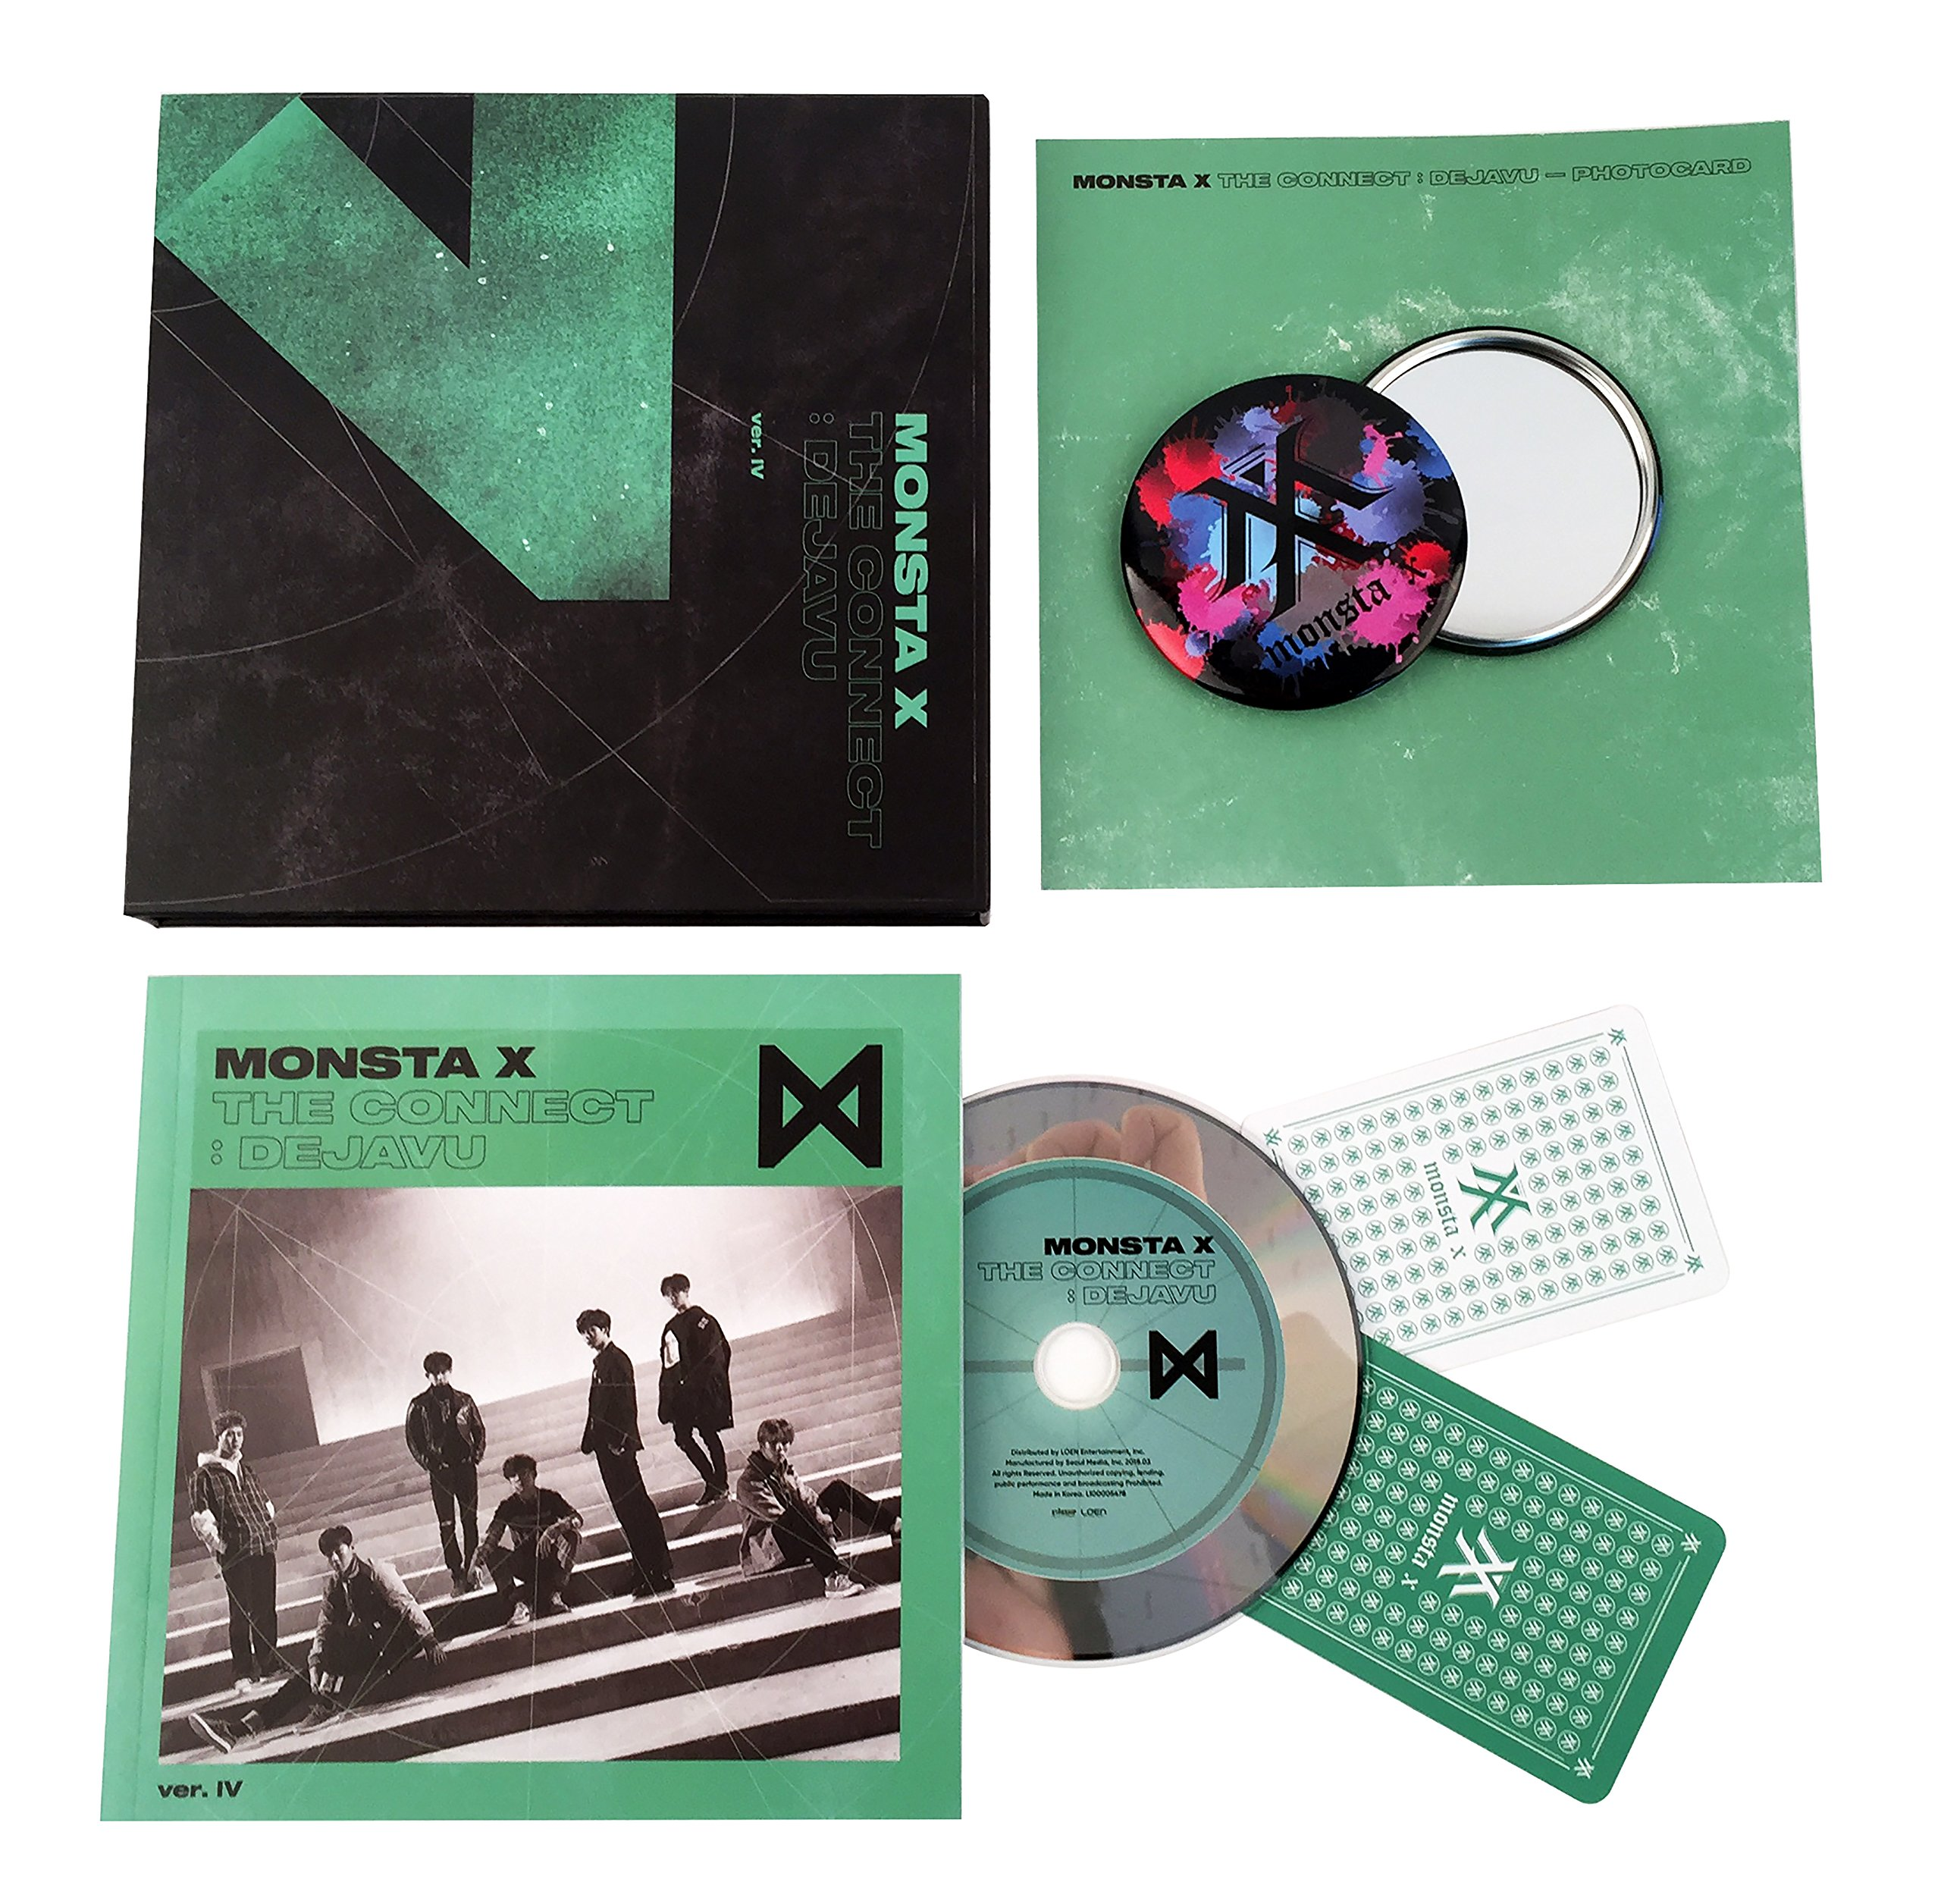 THE CONNECT : DEJAVU [ Ver. IV ] - MONSTA X Album CD + Booklet + 2 Photocards + FREE GIFT / K-POP Sealed by Loen